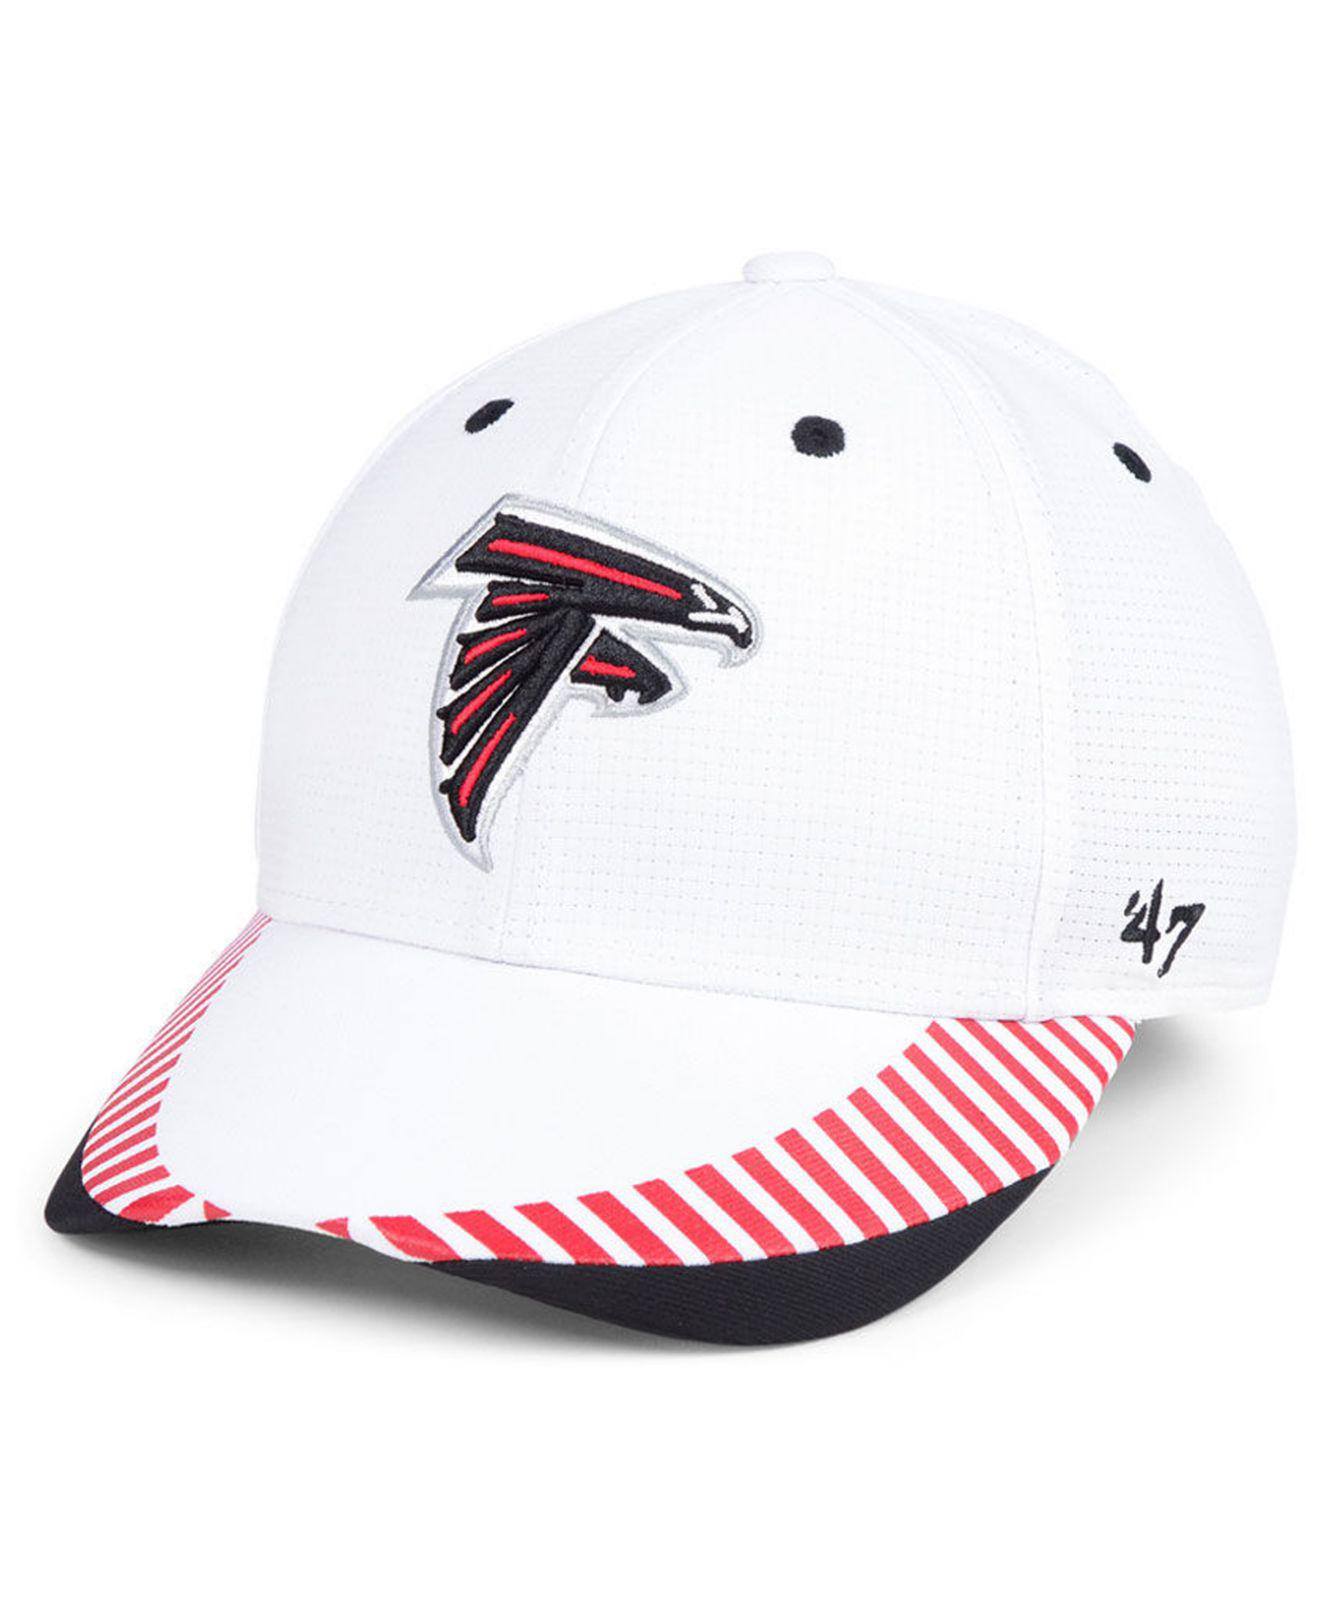 Lyst - 47 Brand Atlanta Falcons Tantrum Contender Flex Cap in White ... 00a9989a5